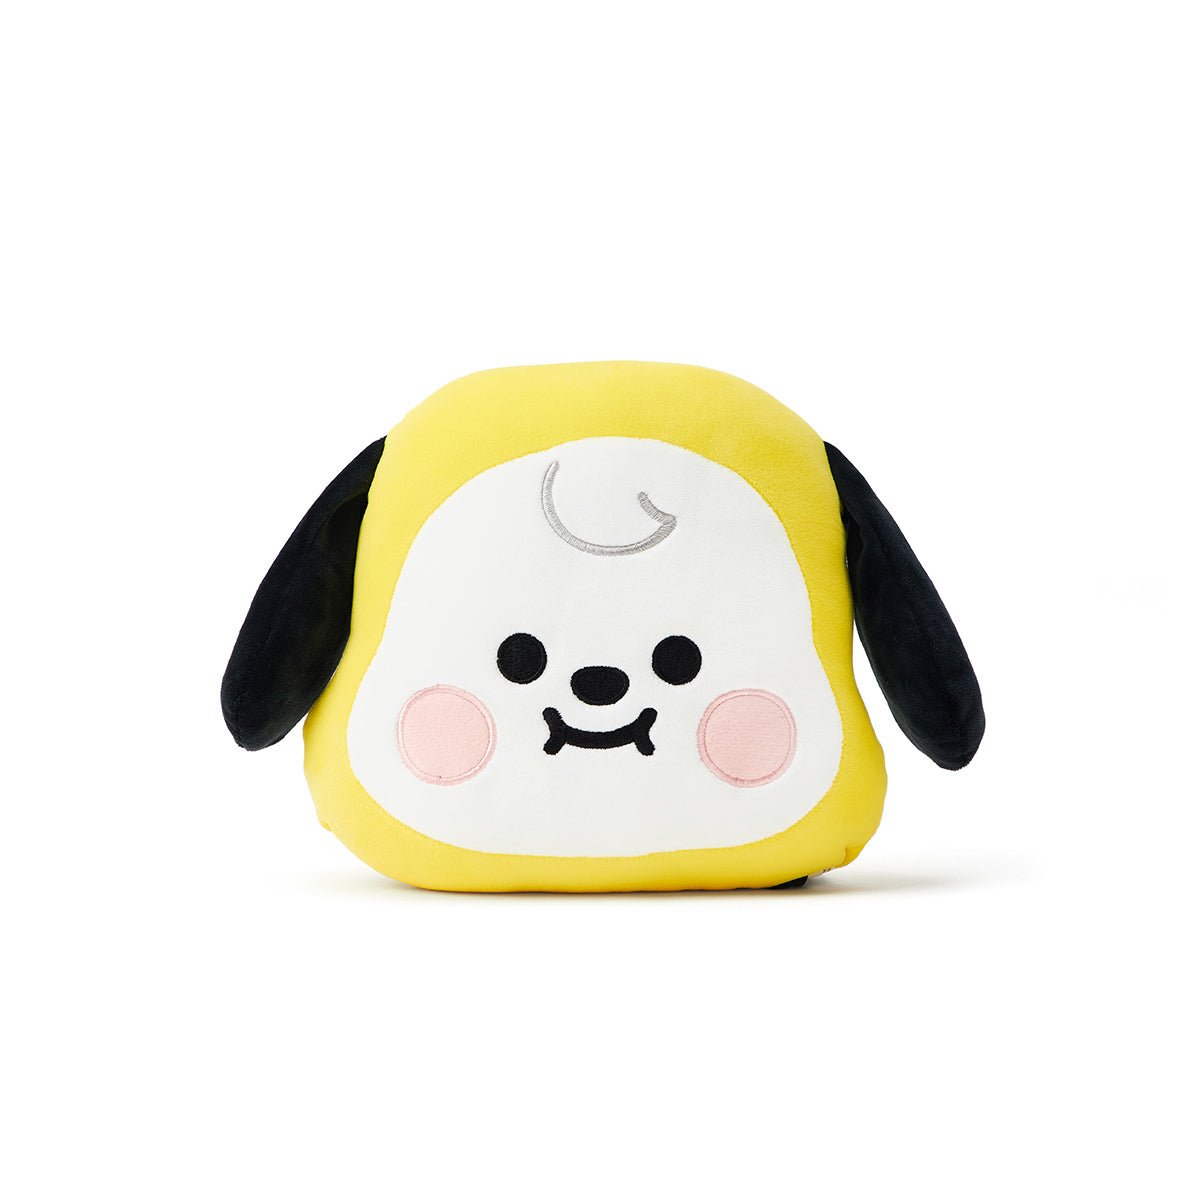 BT21 Baby CHIMMY Flat Face Cushion